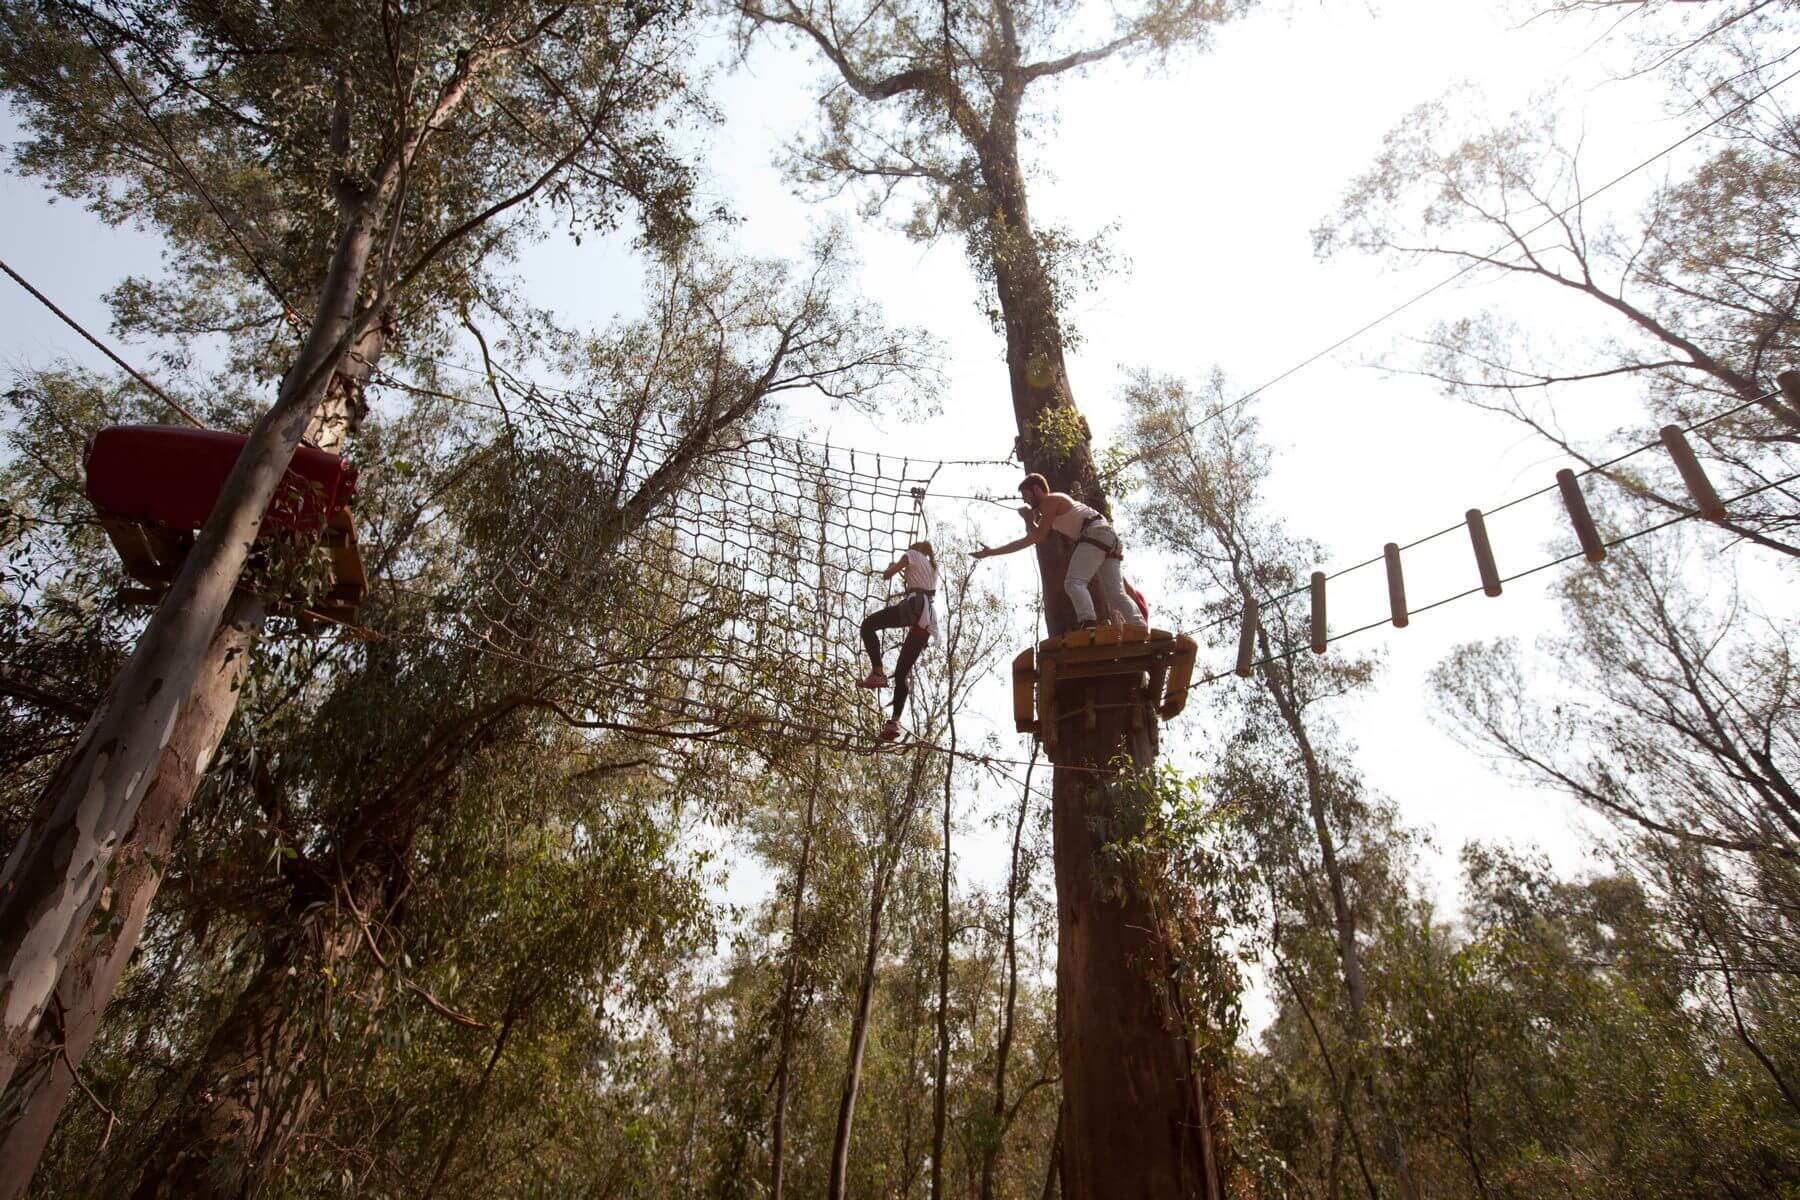 Outdoor Activity Park Pretoria Long Zip Line Team Building Wiring Harness Branched Mg 1177 1